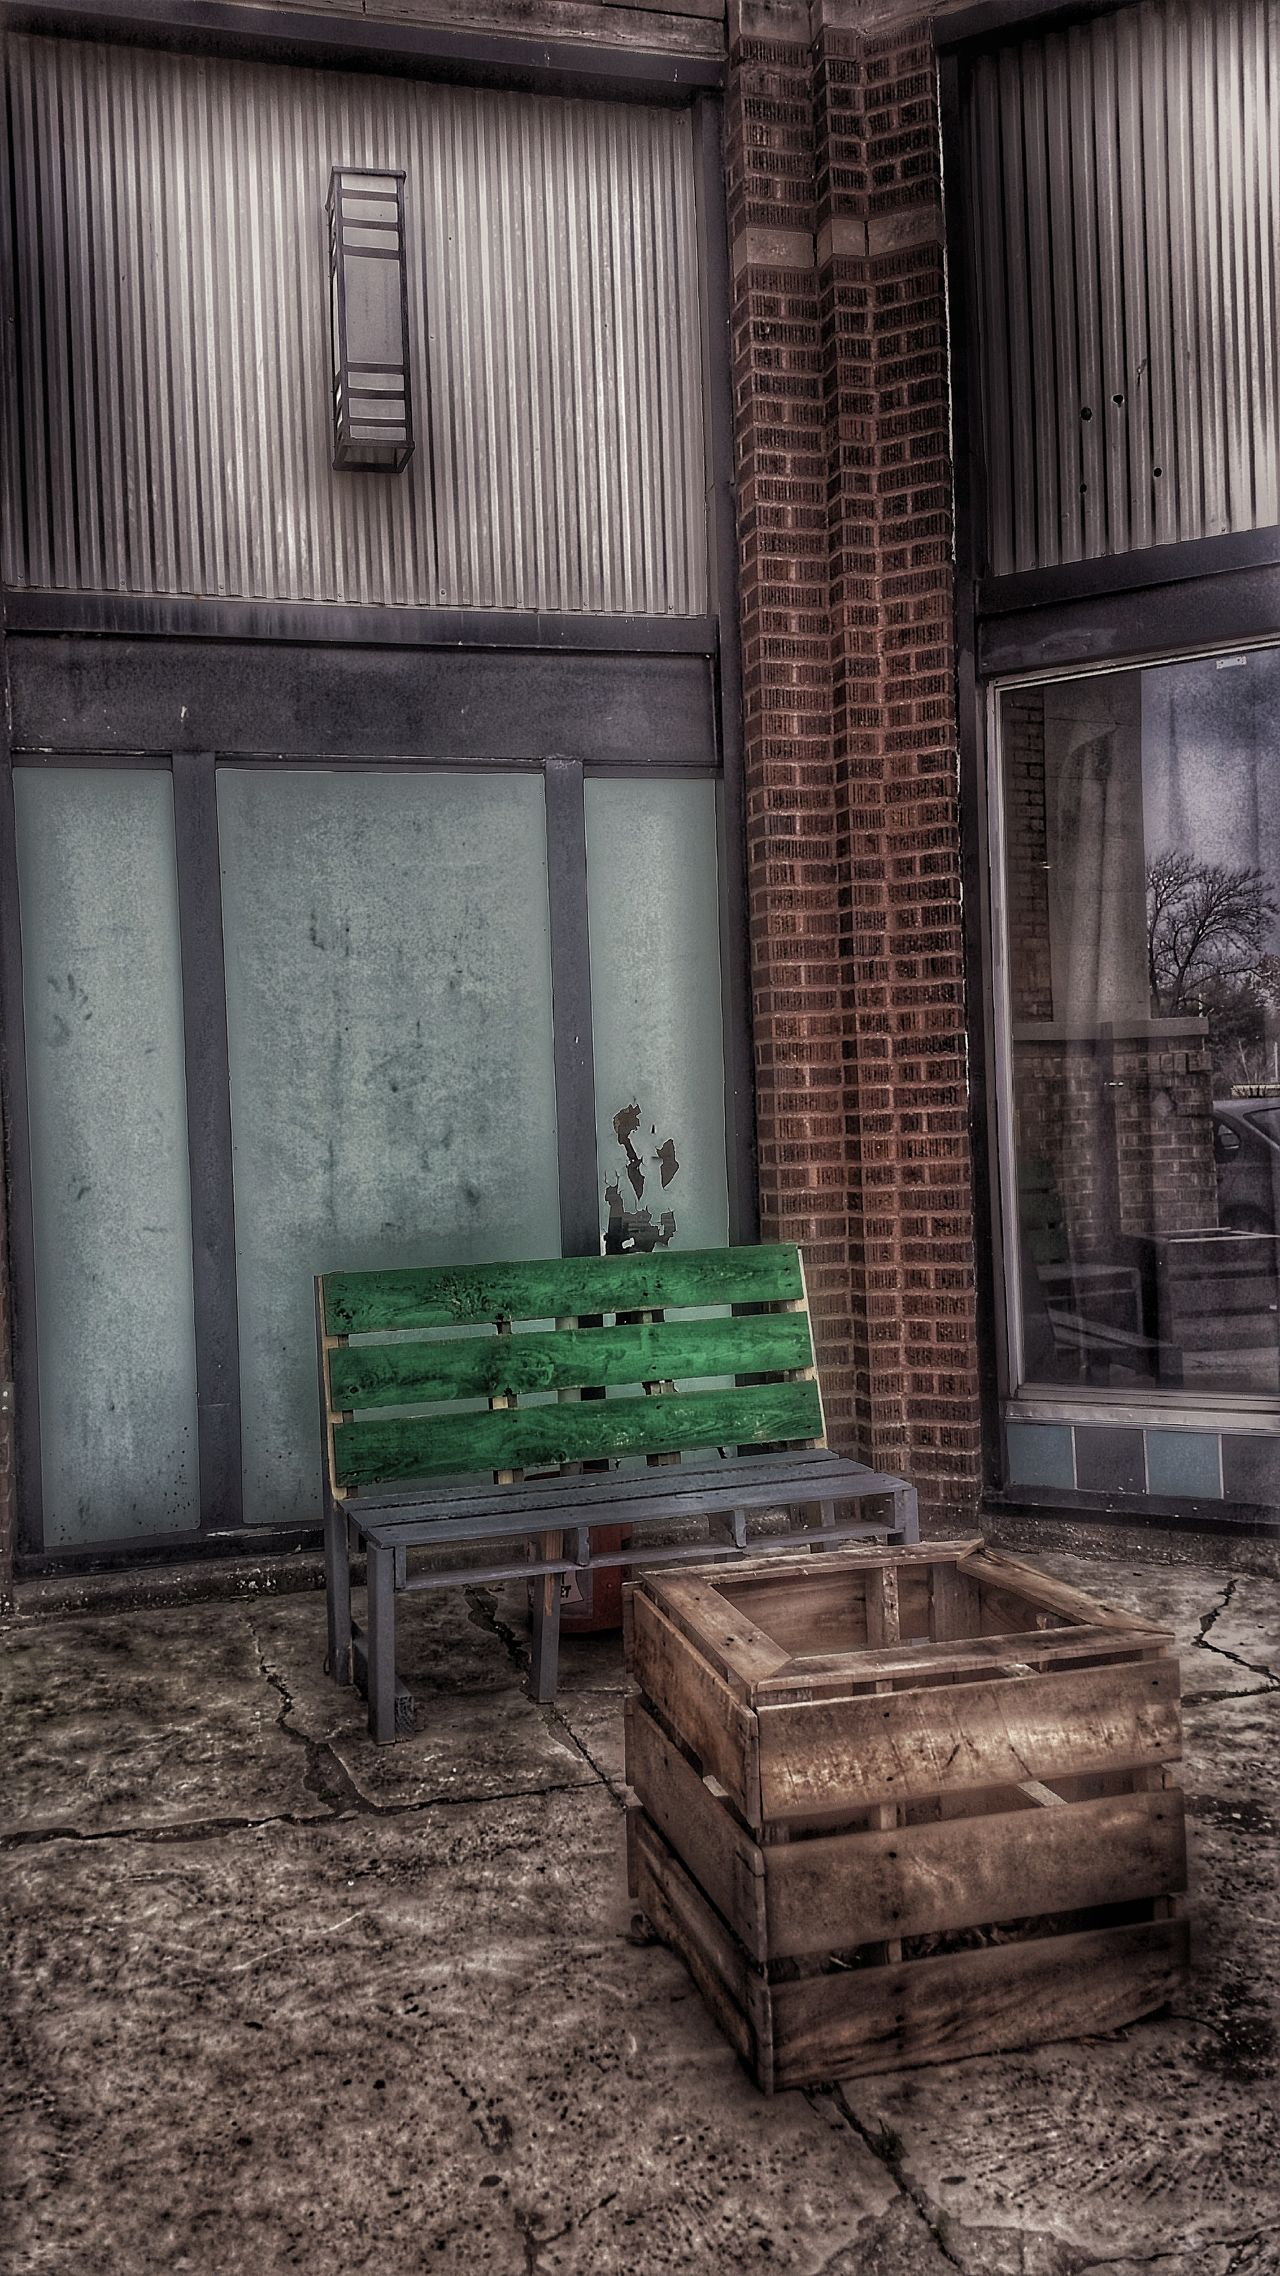 Building Exterior Abandoned HDR Notes From The Underground Abandoned Building Abandoned & Derelict Check This Out Urbanexploration Eye4photography  EyeEmBestPics Textured  Eye4photography  Urbexphotography Hdr Collections Hdr_pics EyeEm Best Shots EyeEm Best Edits EyeEm Gallery Deterioration Me, My Camera And I Taking Photos Hello World Abandoned Places EyeEm EyeEmBestEdits